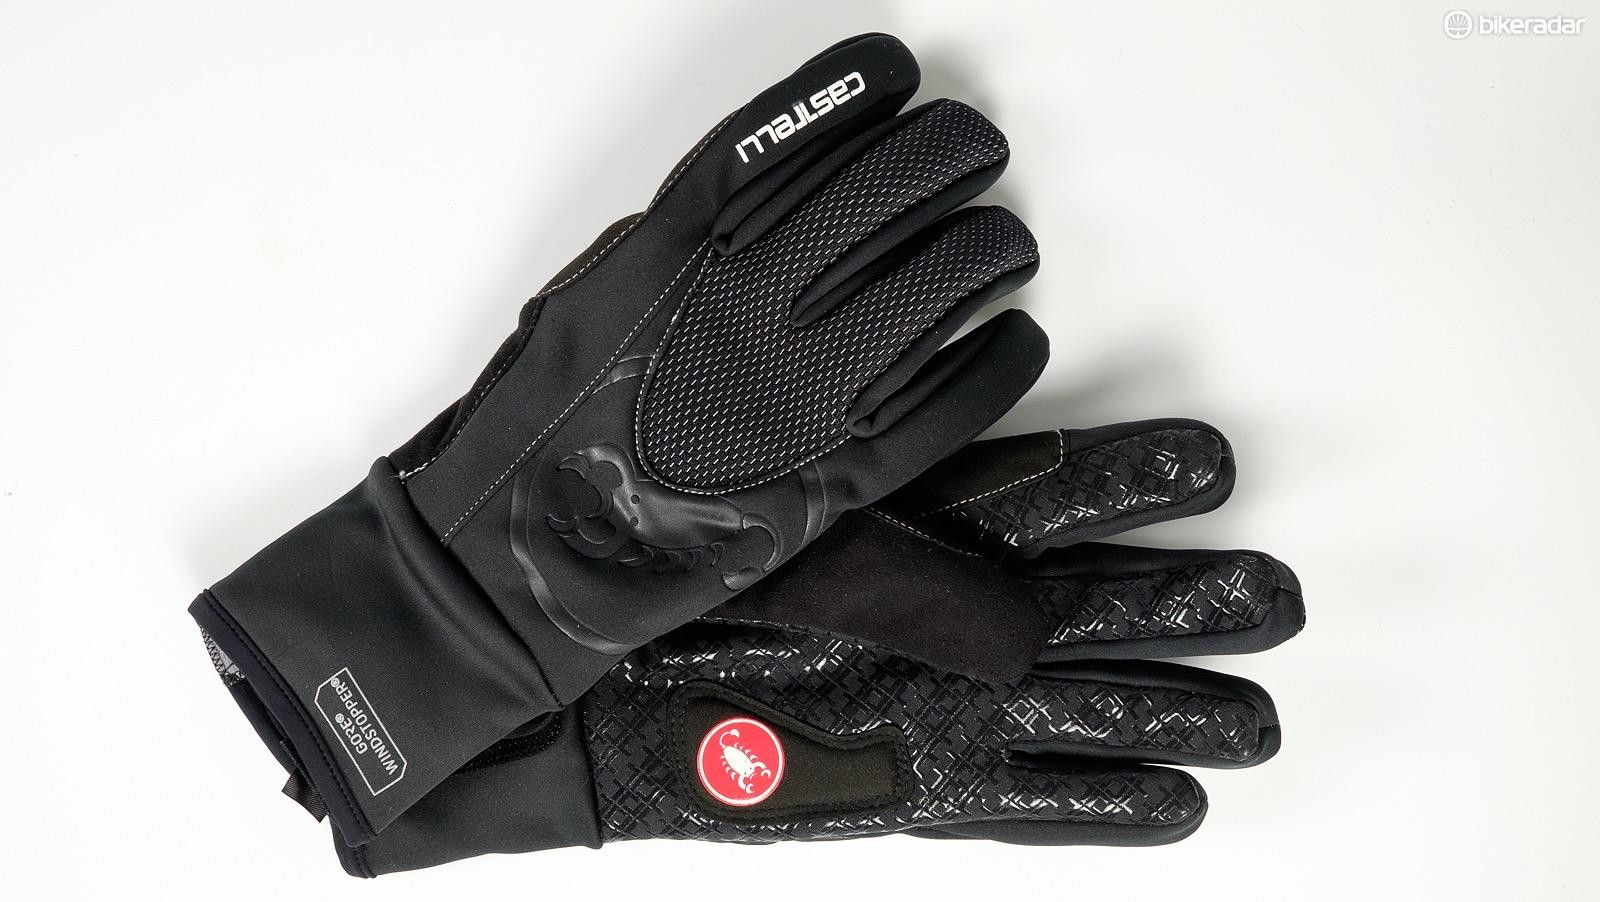 gloves-6-of-6-1510591369549-pwf2bsst90vb-8429411